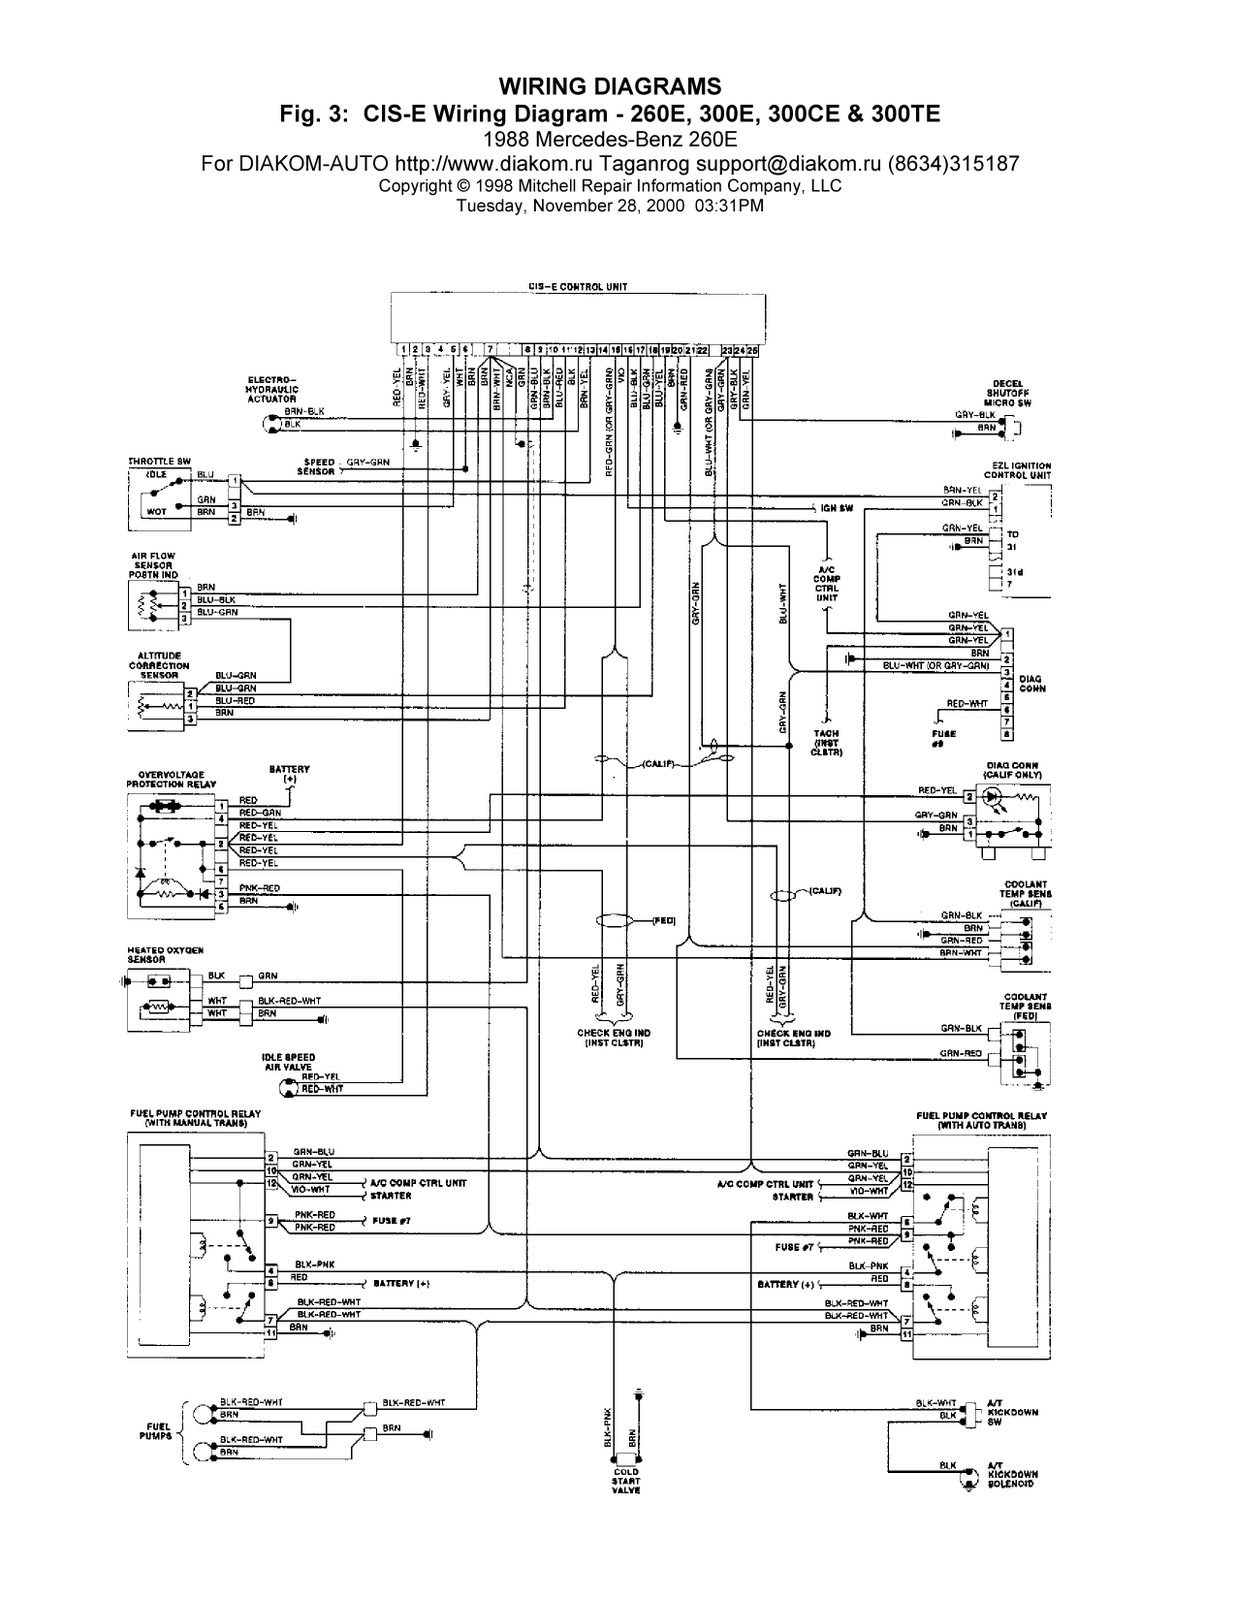 hight resolution of 2001 ml320 fuse diagram wiring diagram g92000 benz ml320 fuse diagram wiring diagrams cks 07 mercedes